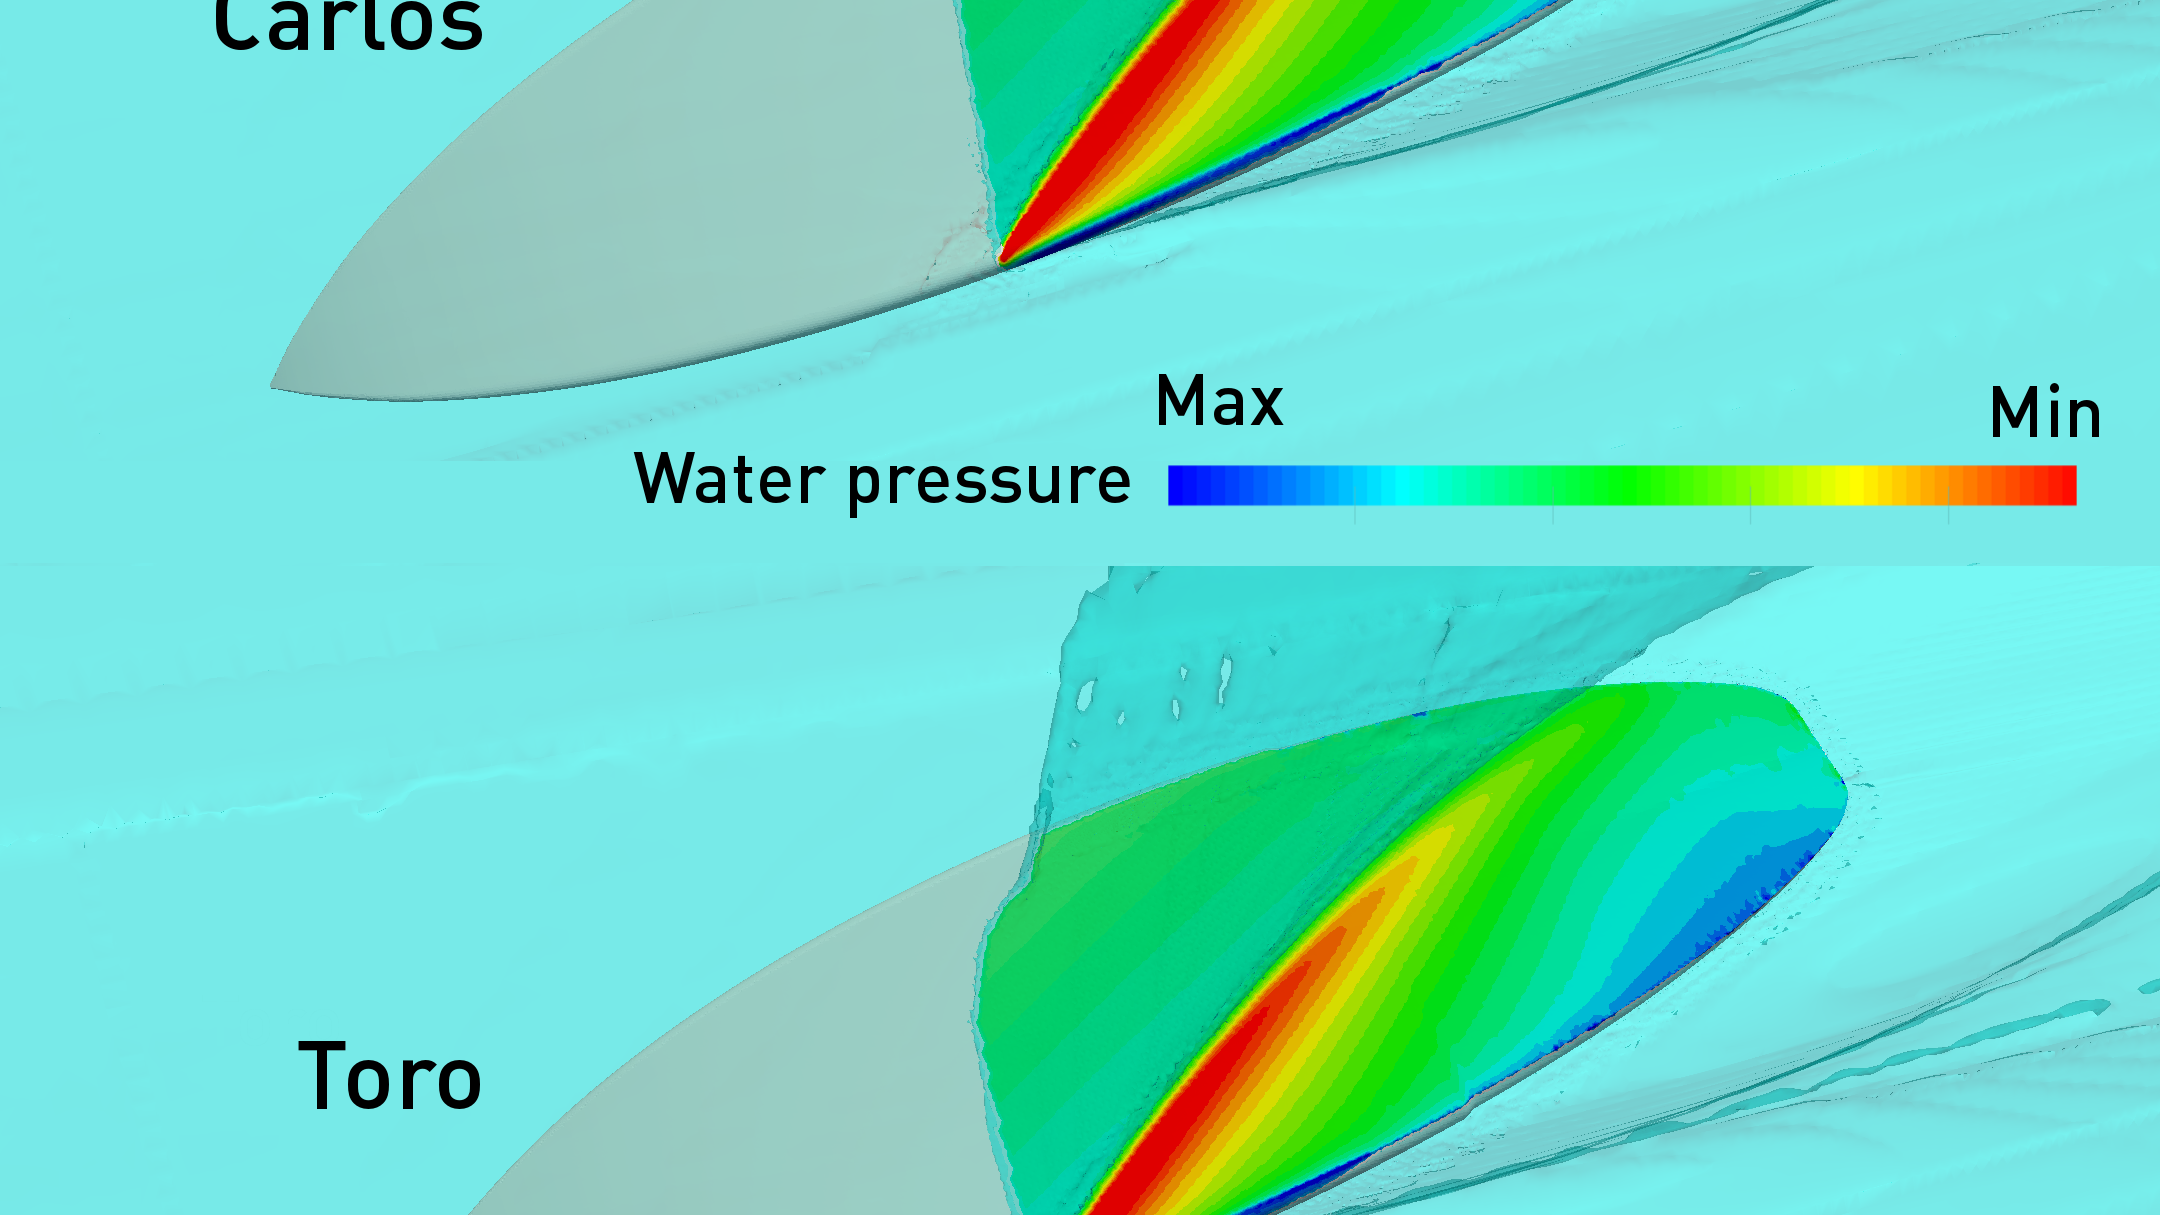 board Surface Pressure Comparison Carving